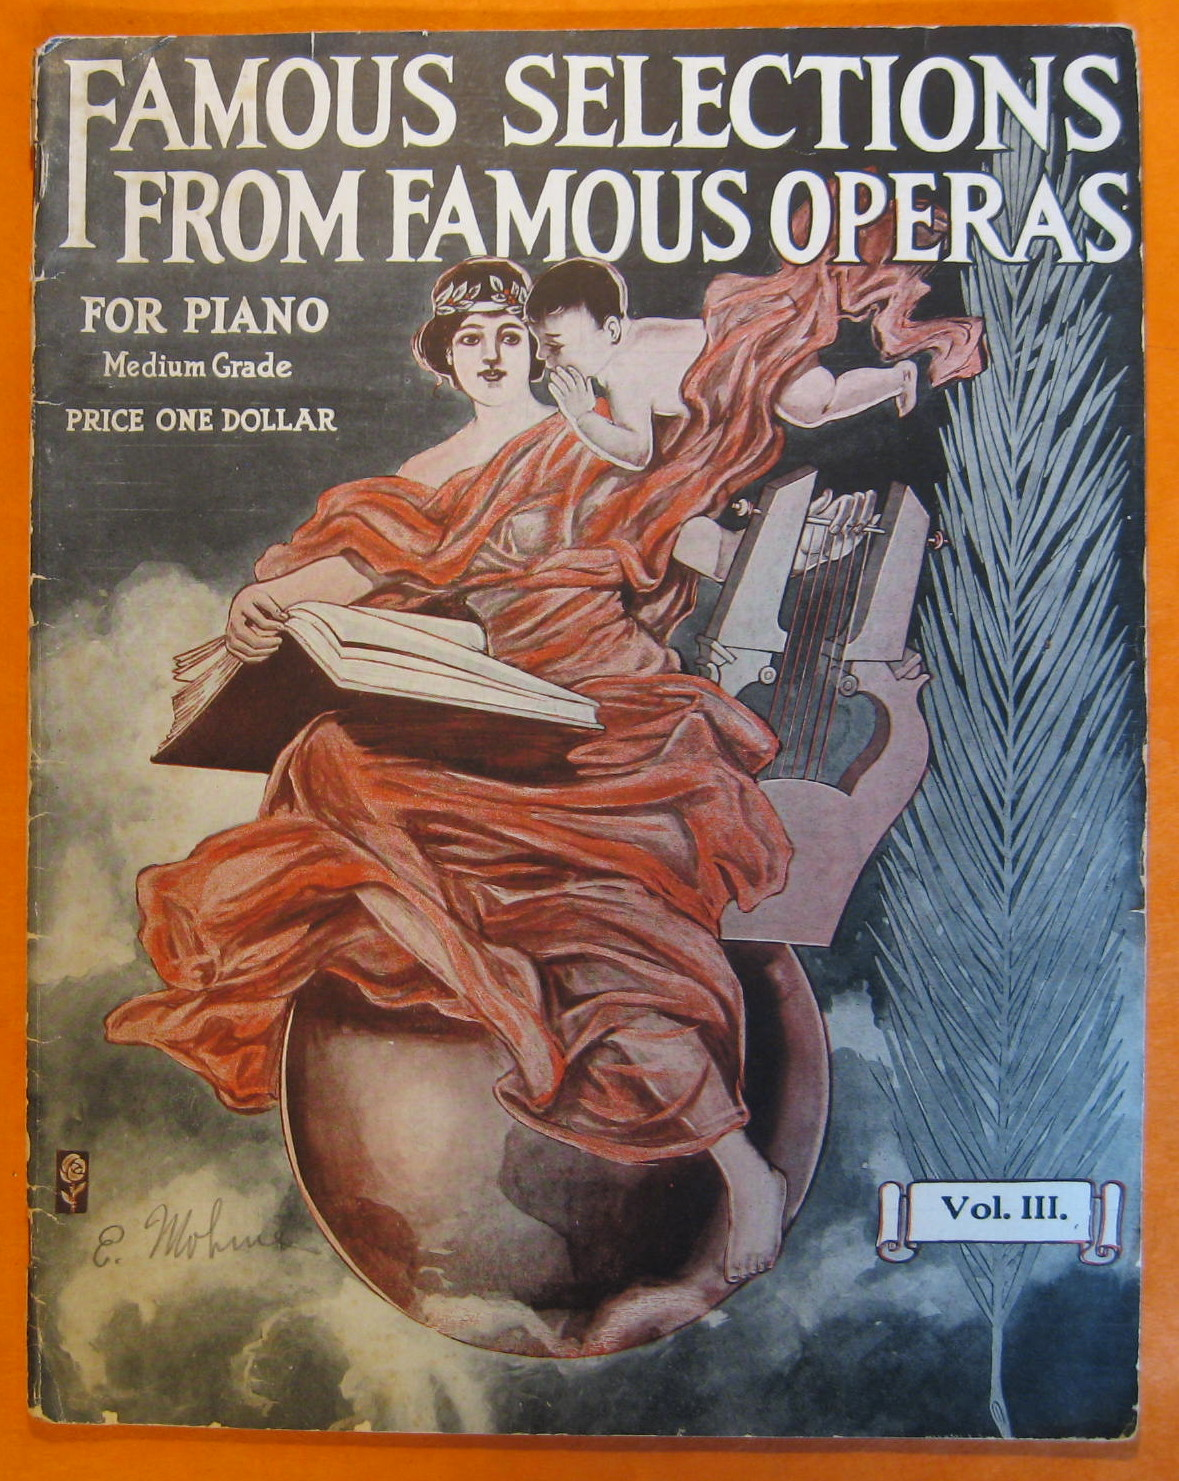 Famous Selections From Famous Operas For Piano, Volume III